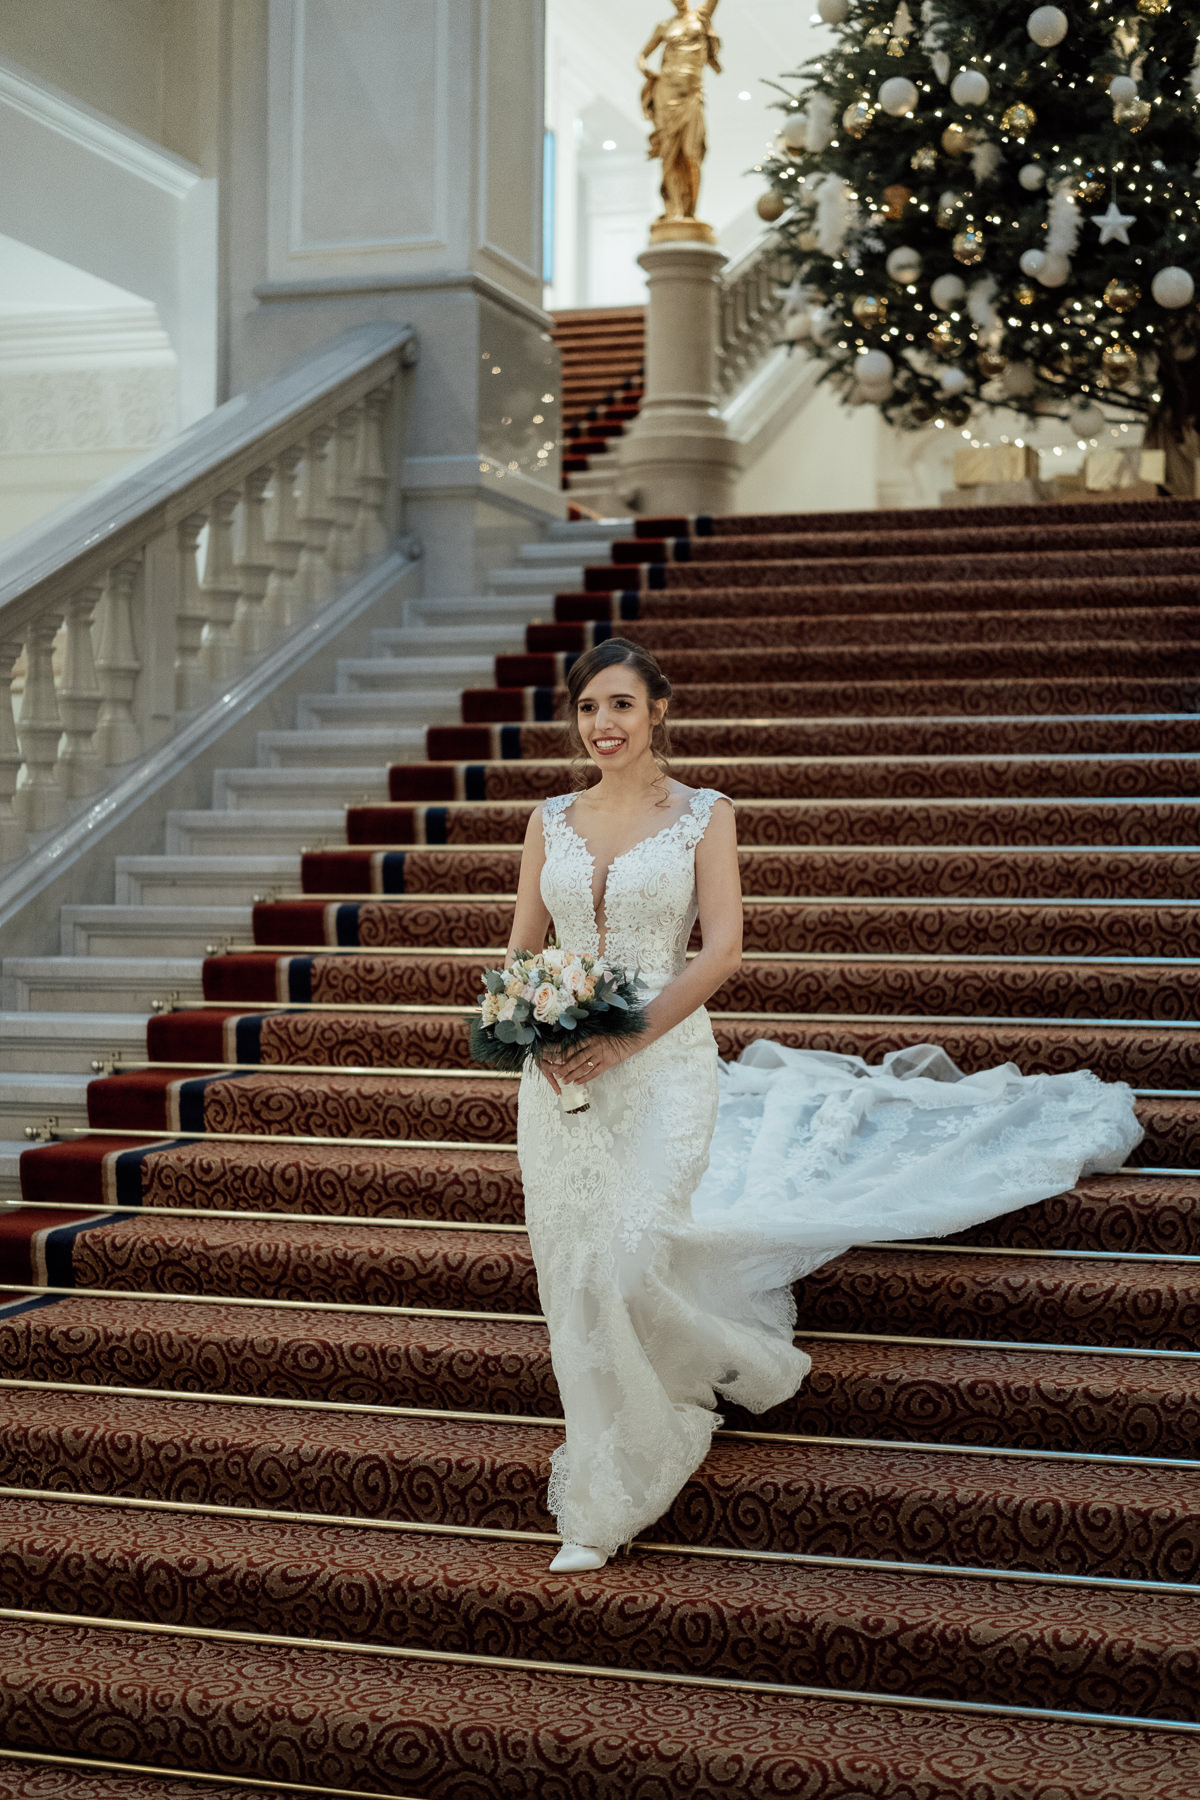 Bride portrait on staircase in Corinthia